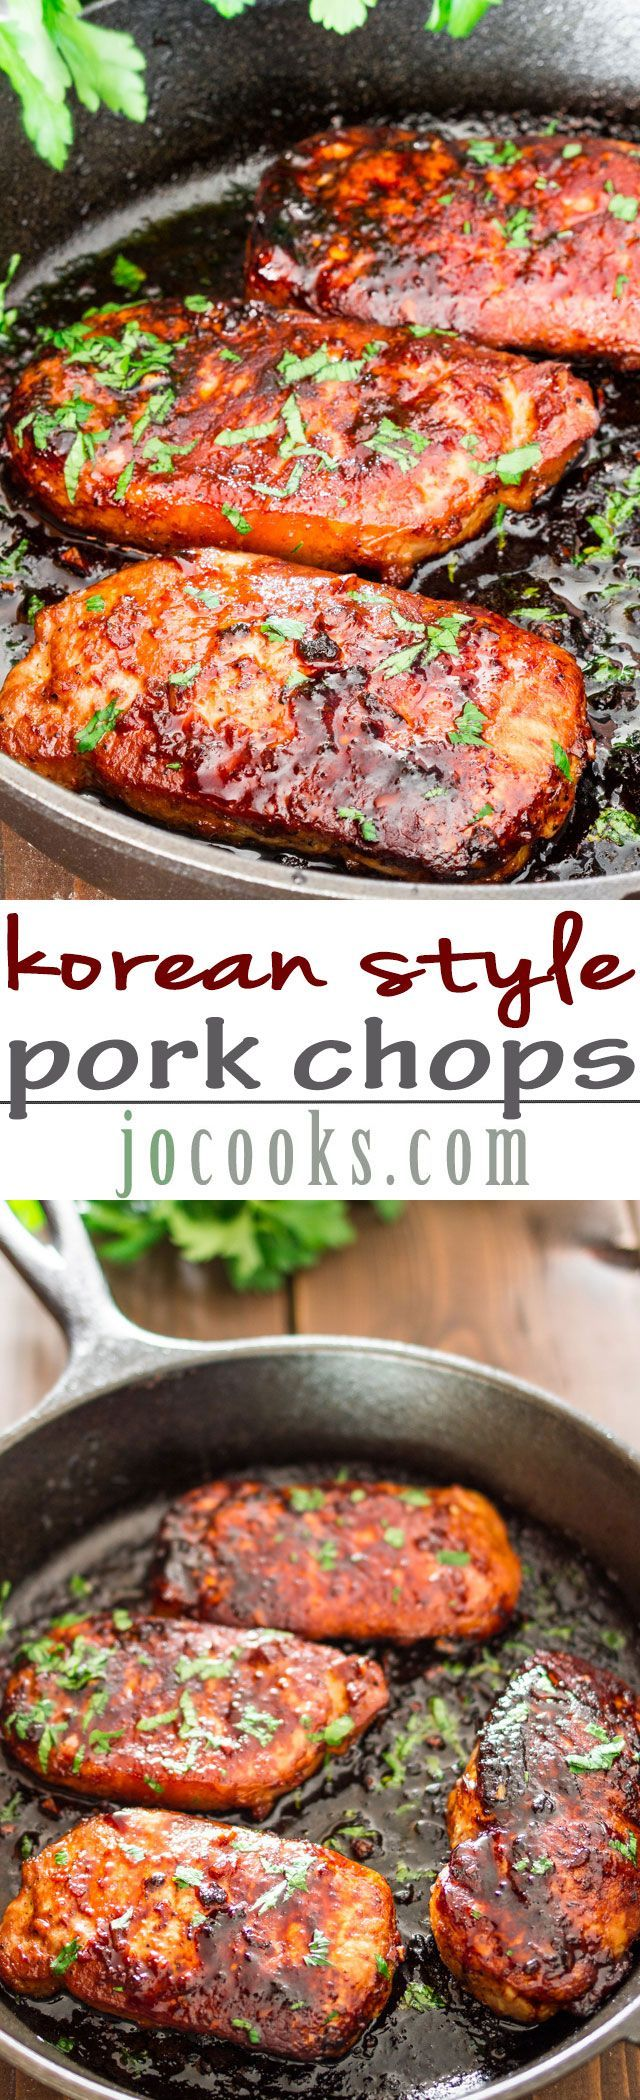 Korean Style Pork Chops — so flavorful, everyone's bound to have seconds! www.j…